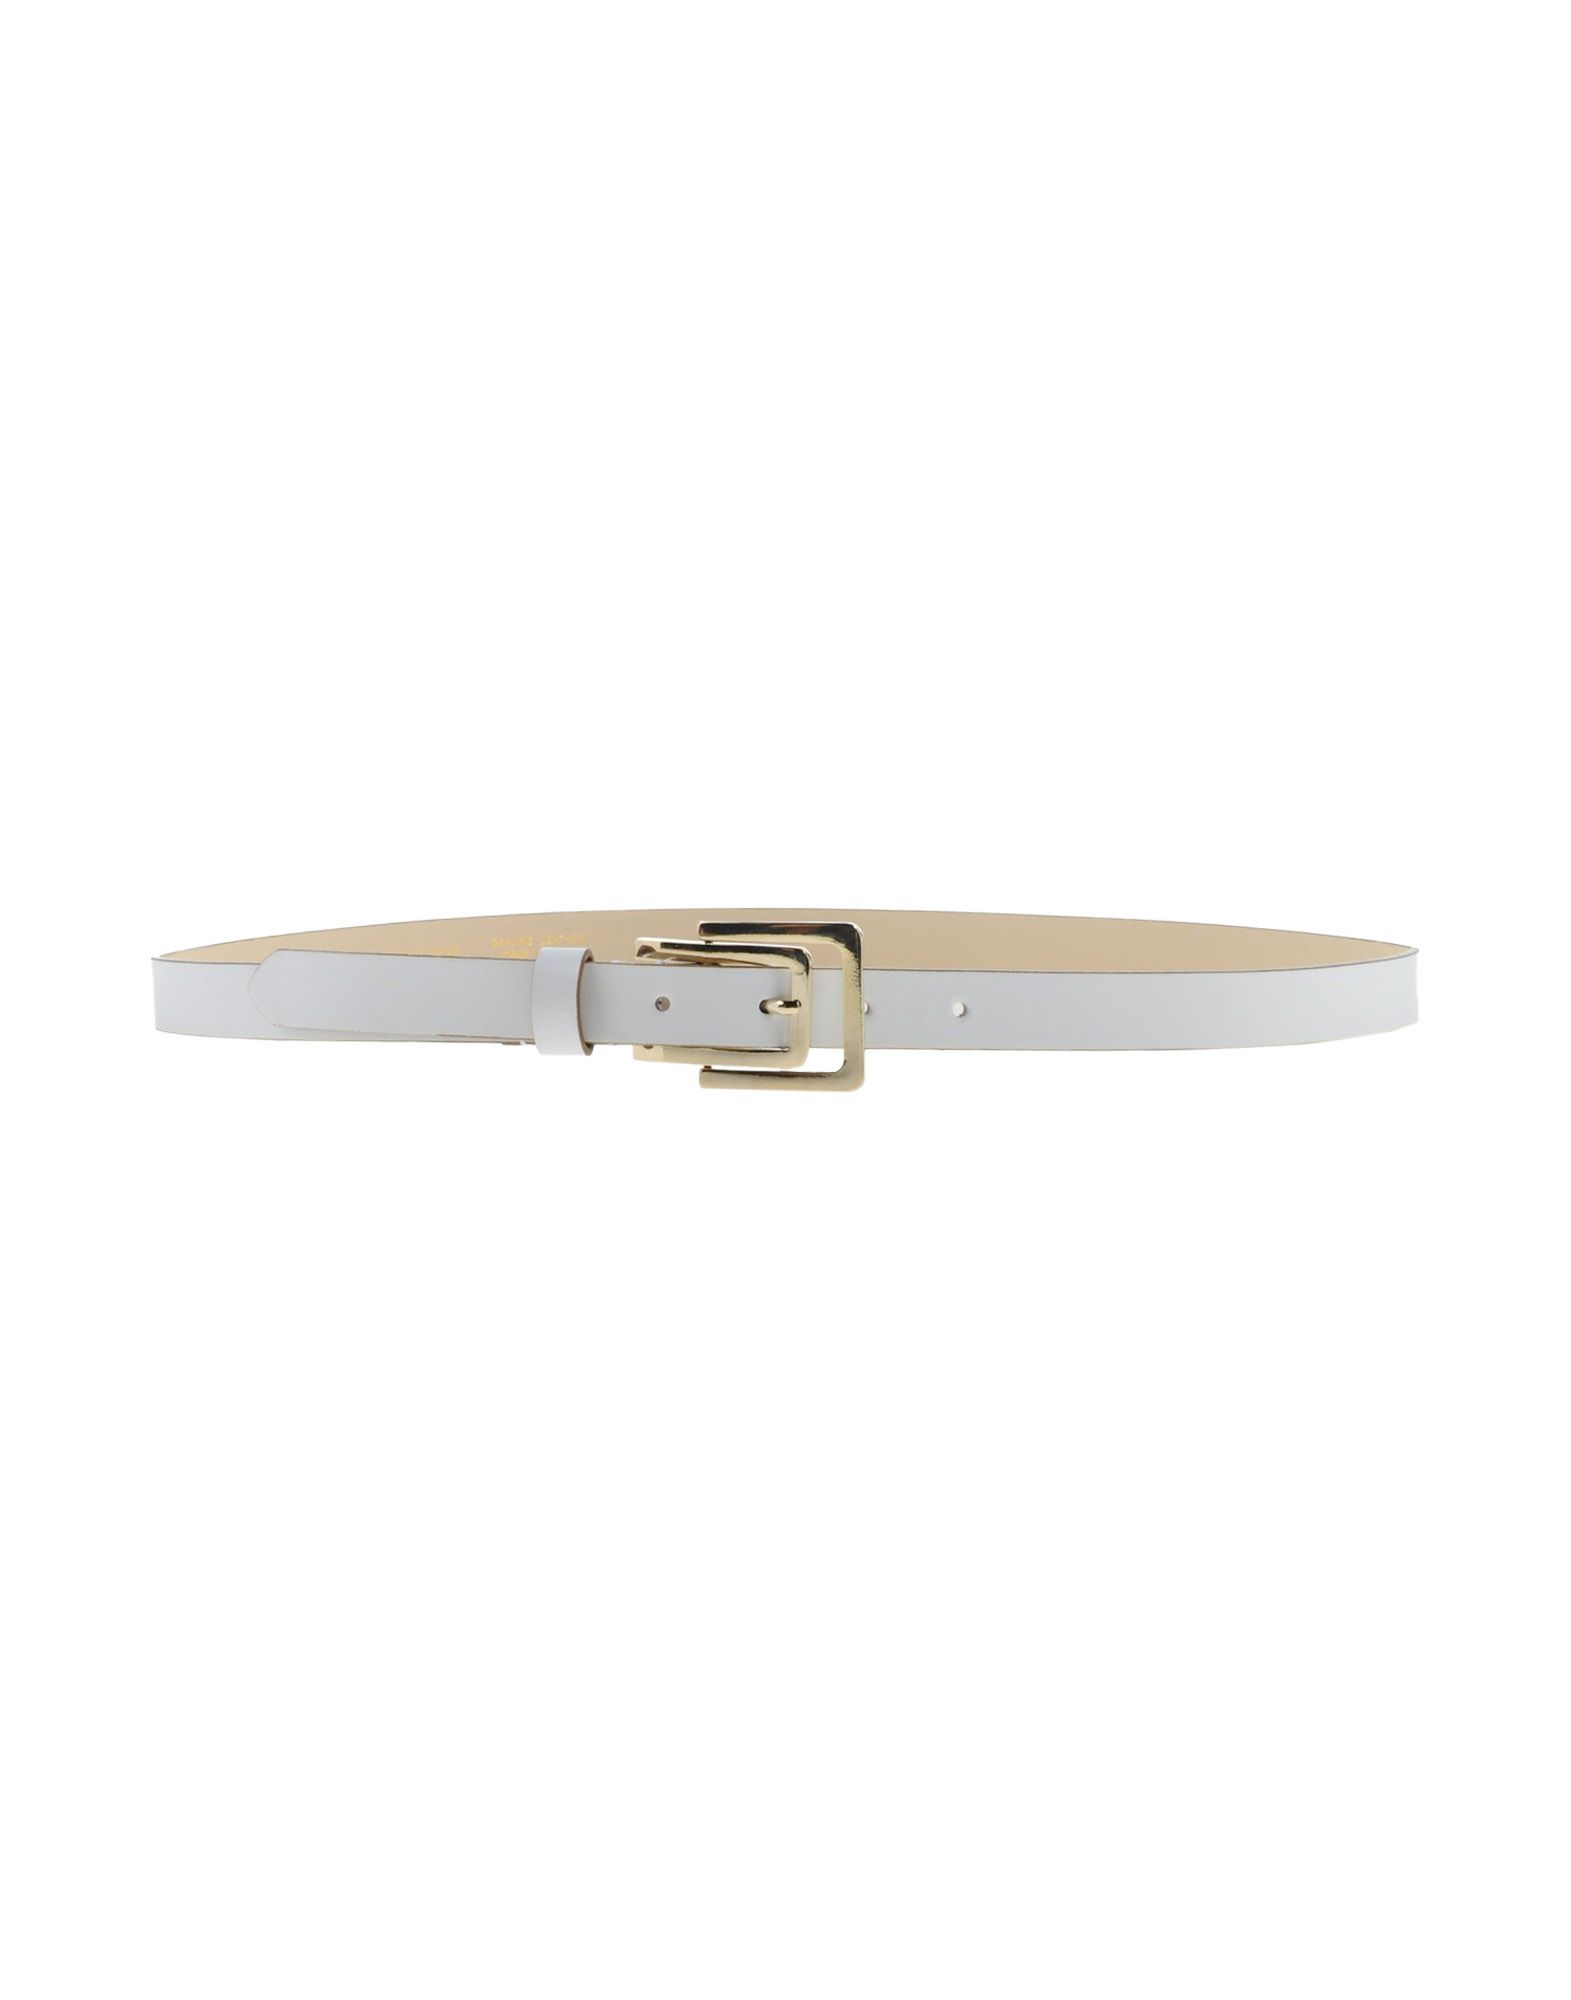 Small Leather Goods - Belts Hotel Particulier C7p6mT